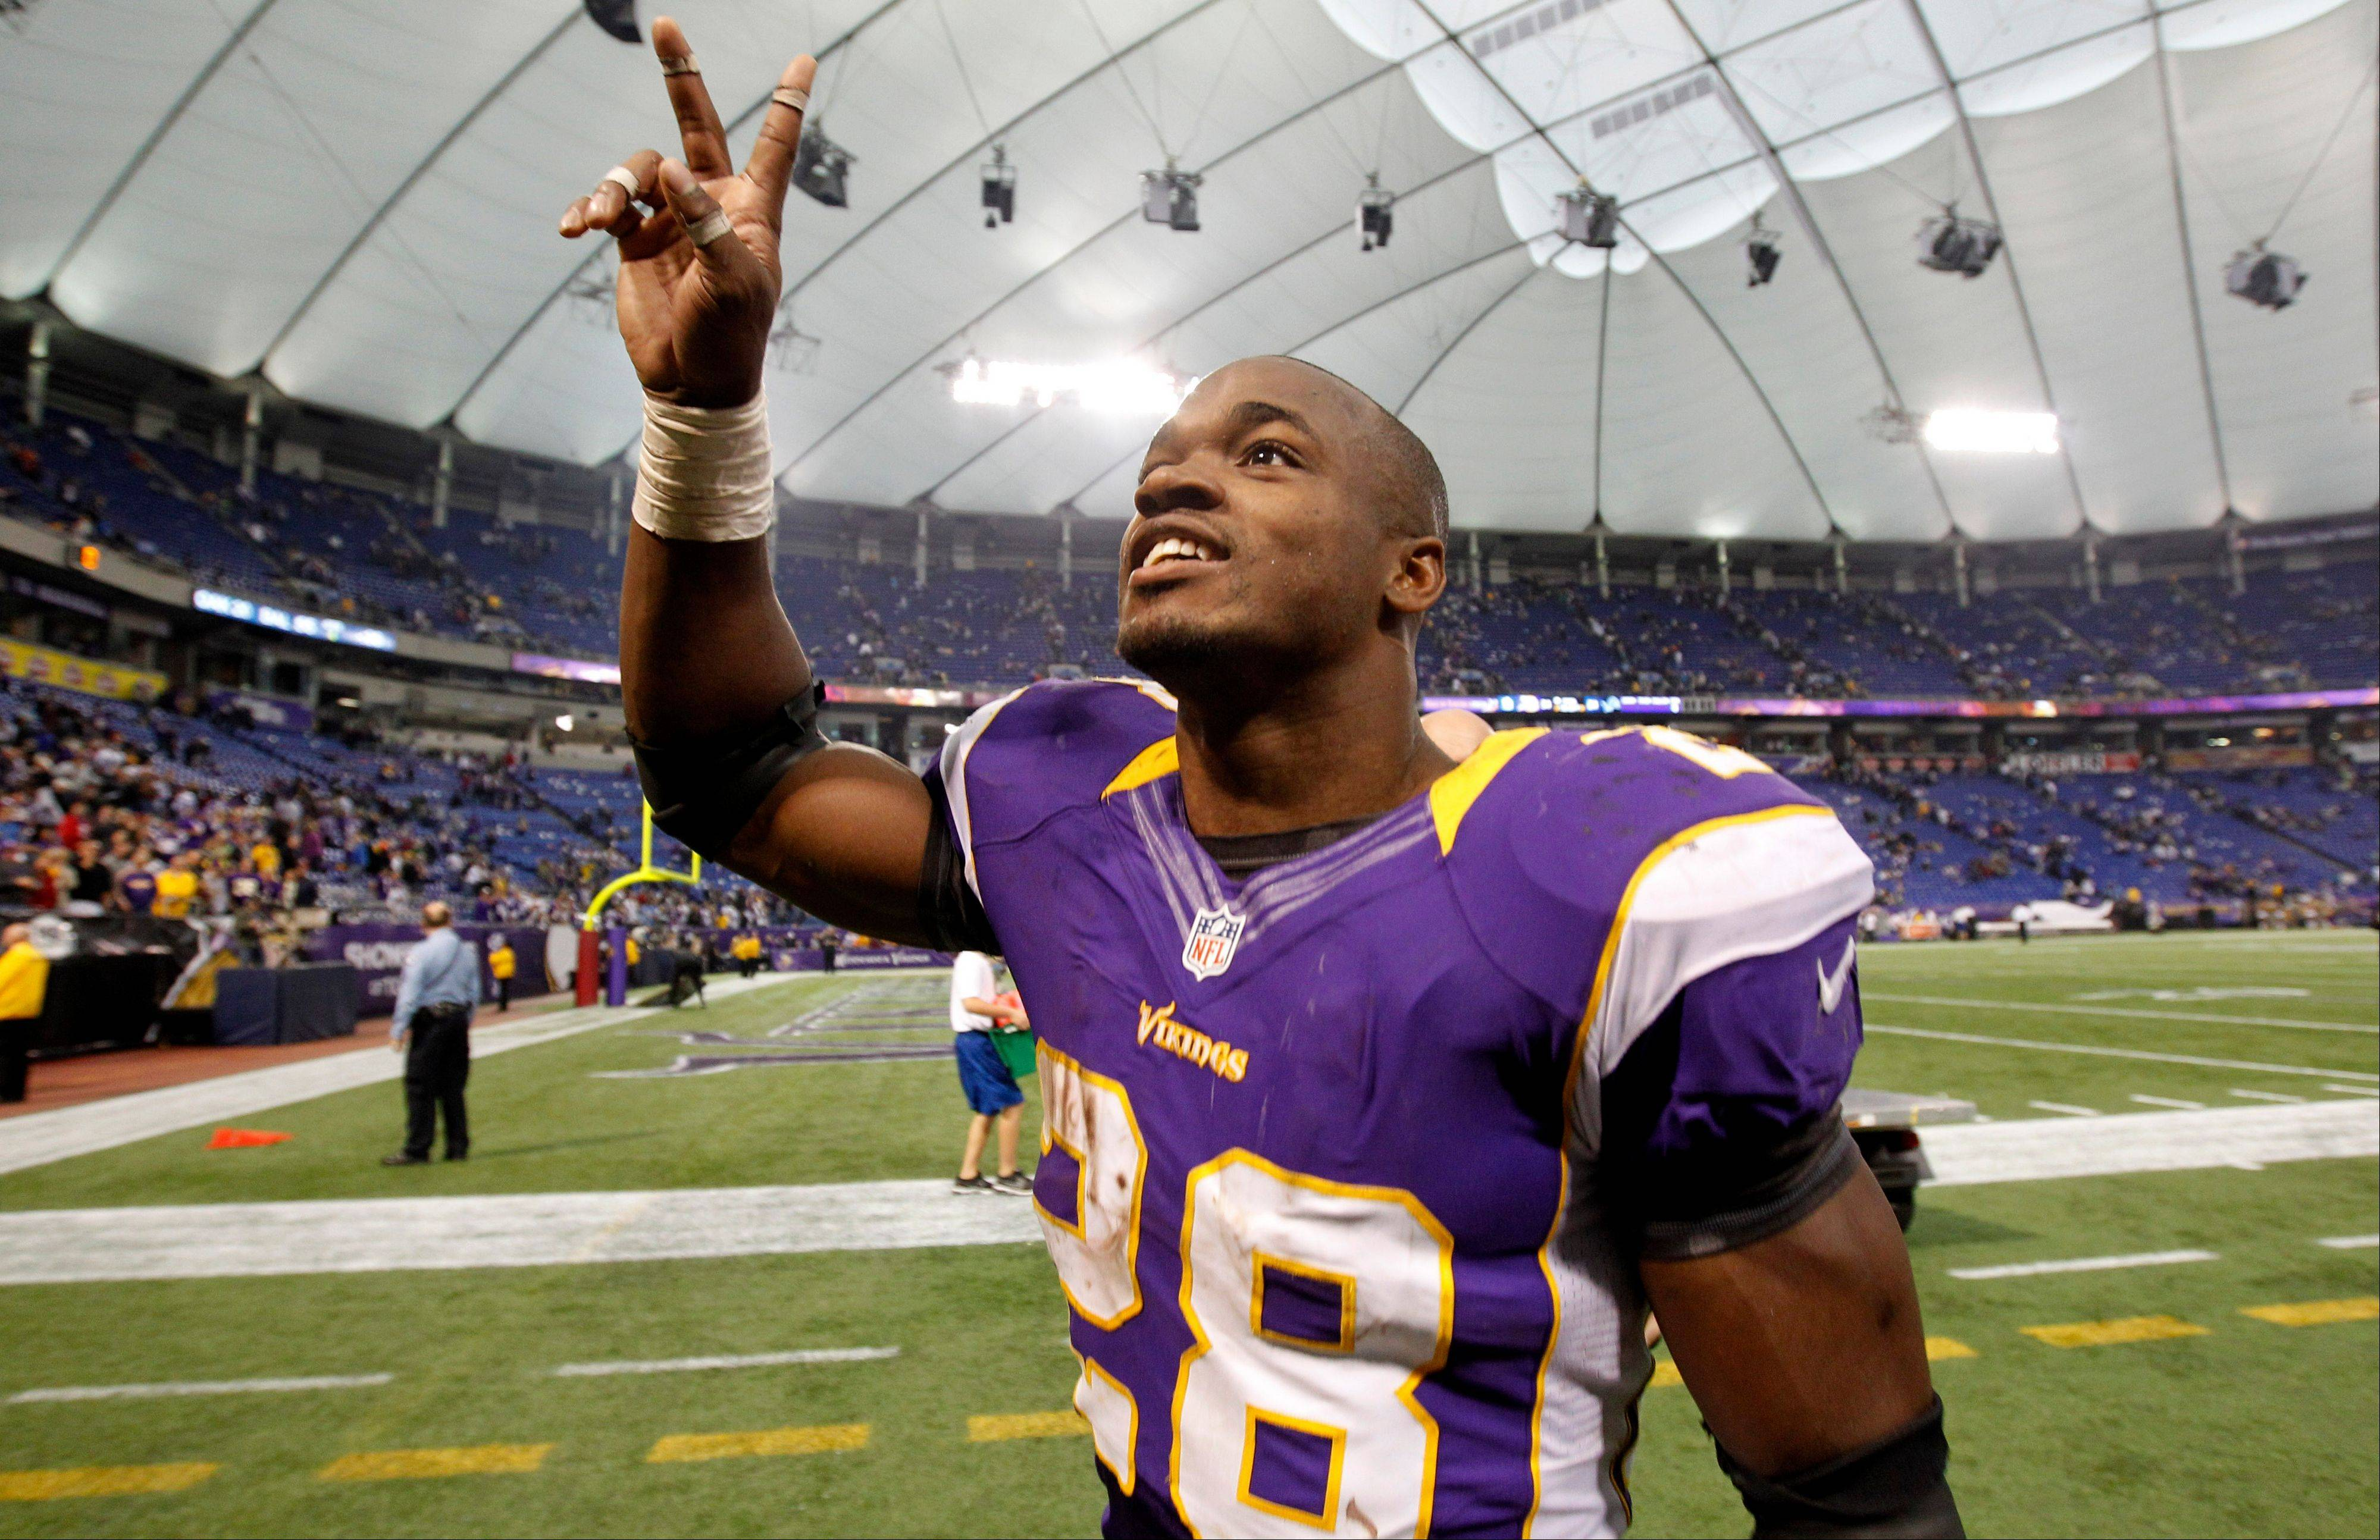 Vikings hope Peterson can carry them to win against Bears